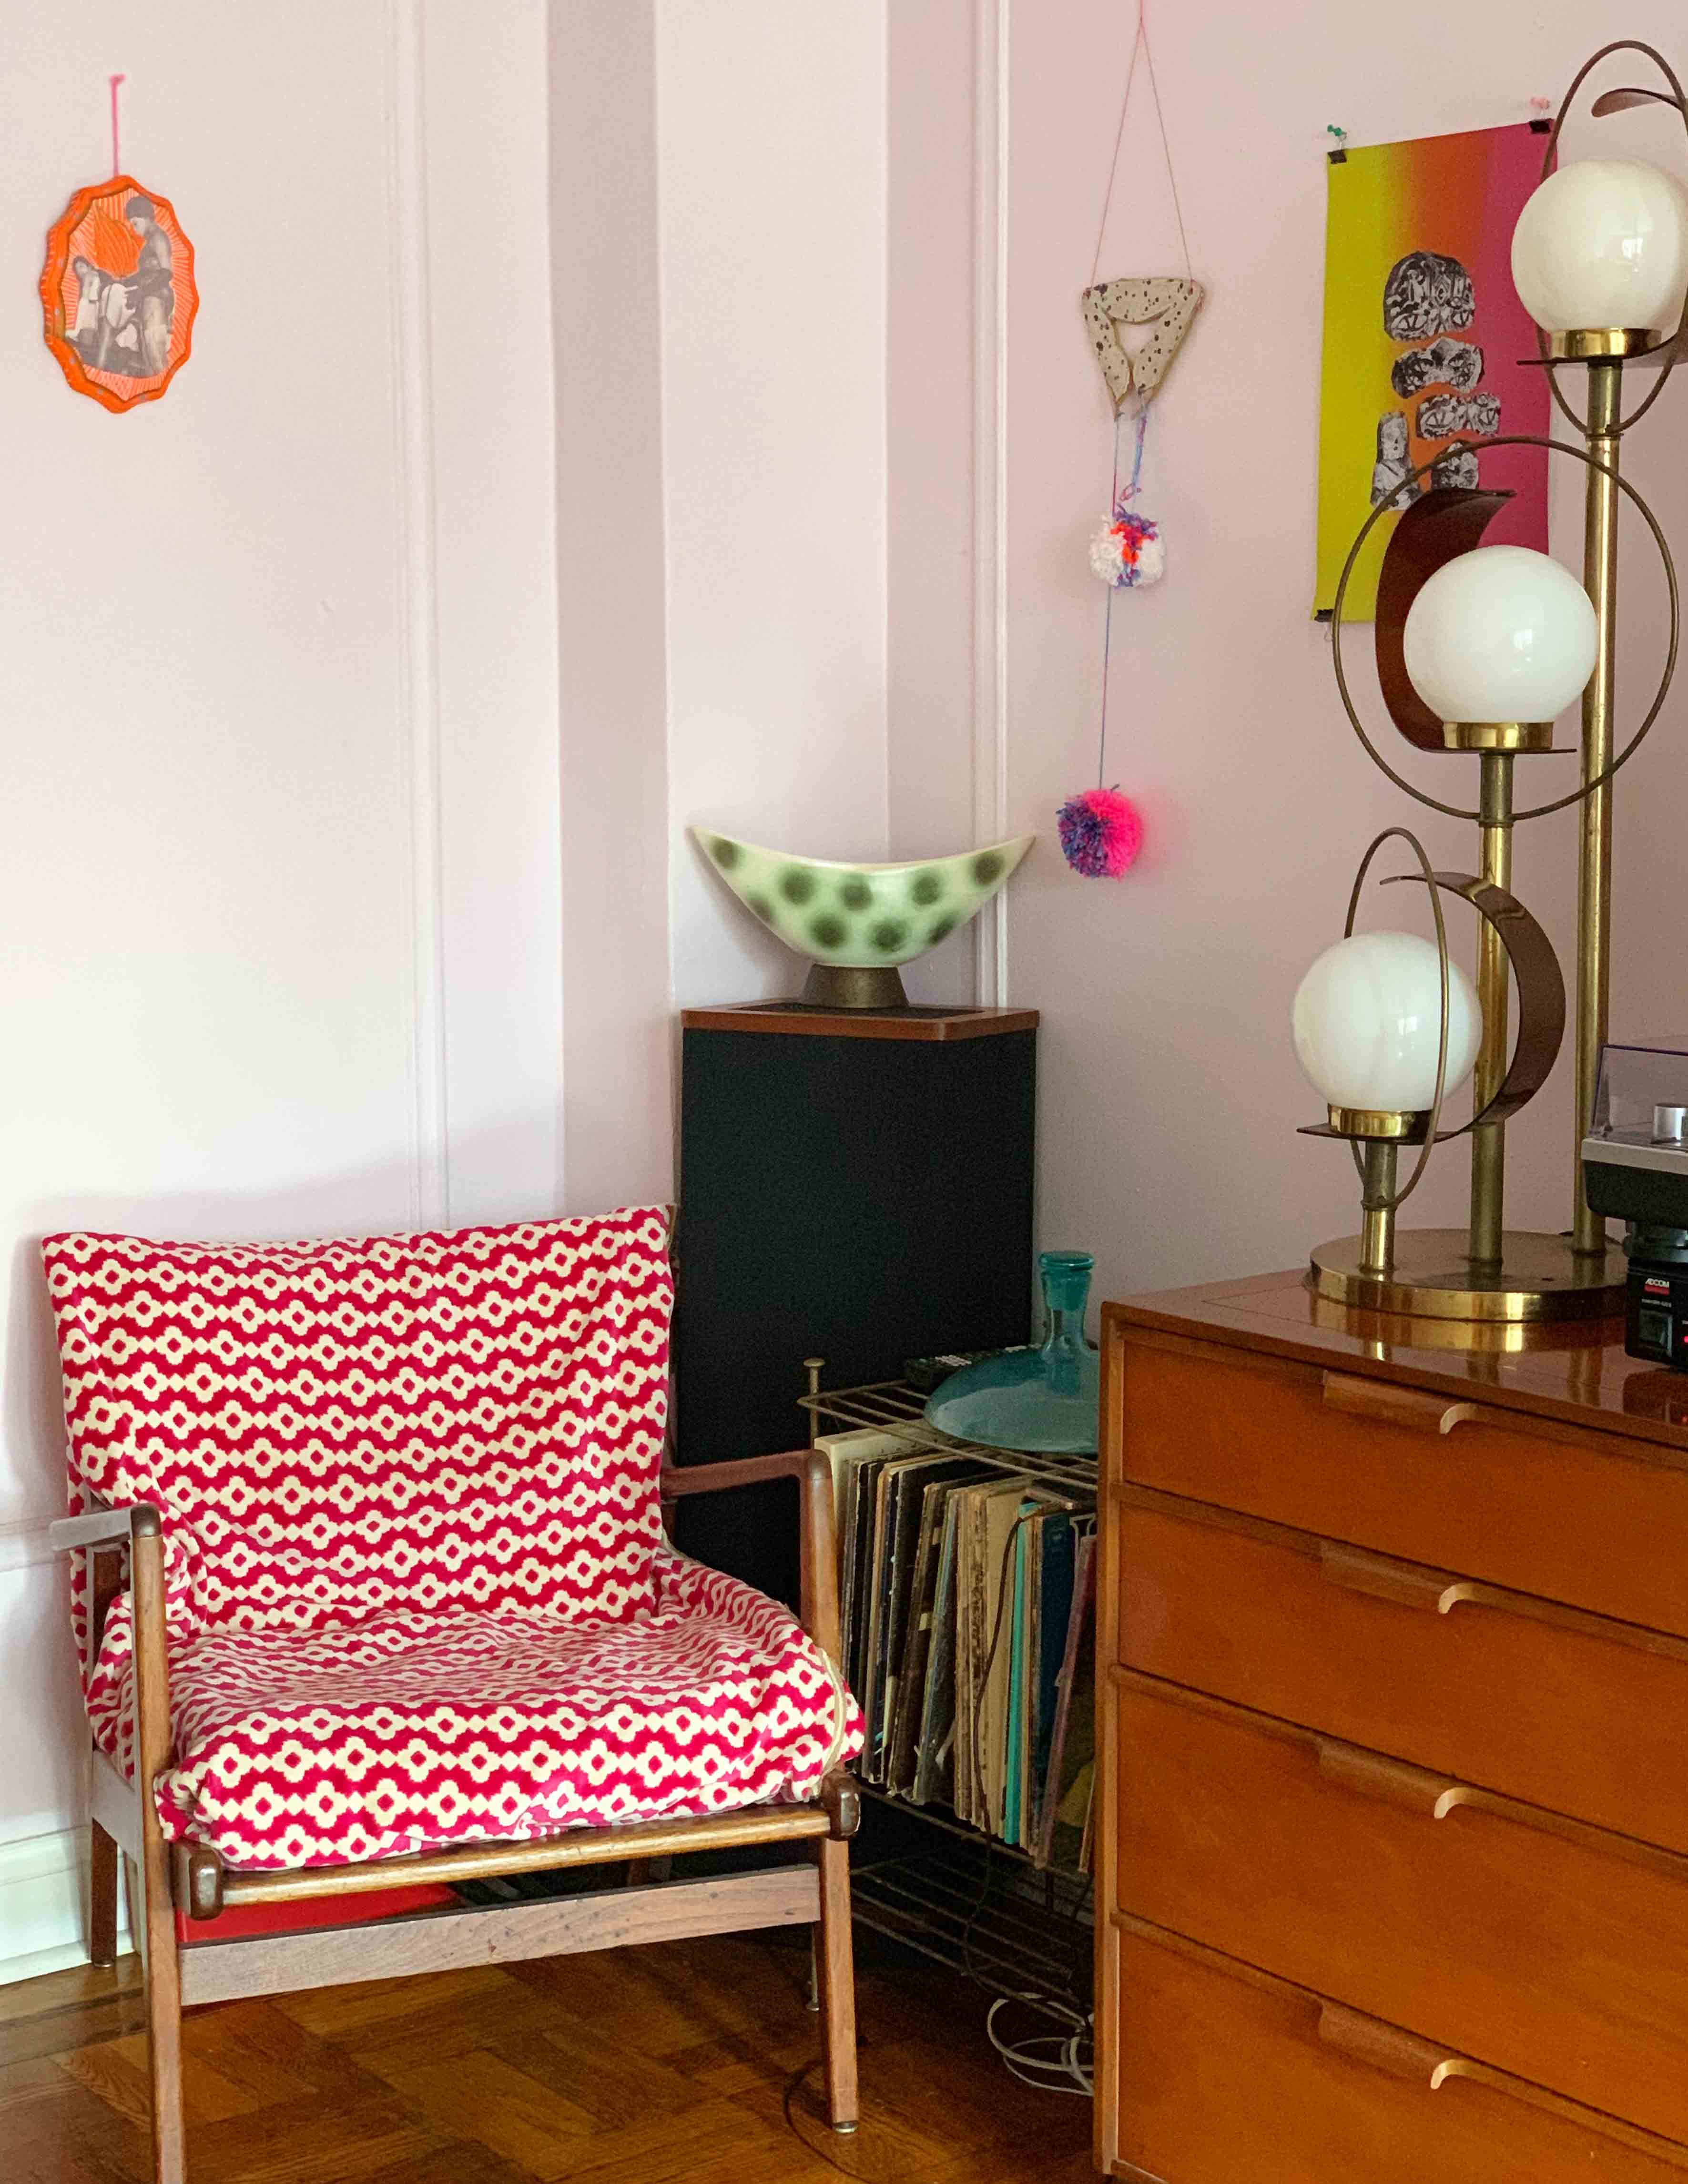 A Radical Pre-War Rental in Flatbush, Design*Sponge